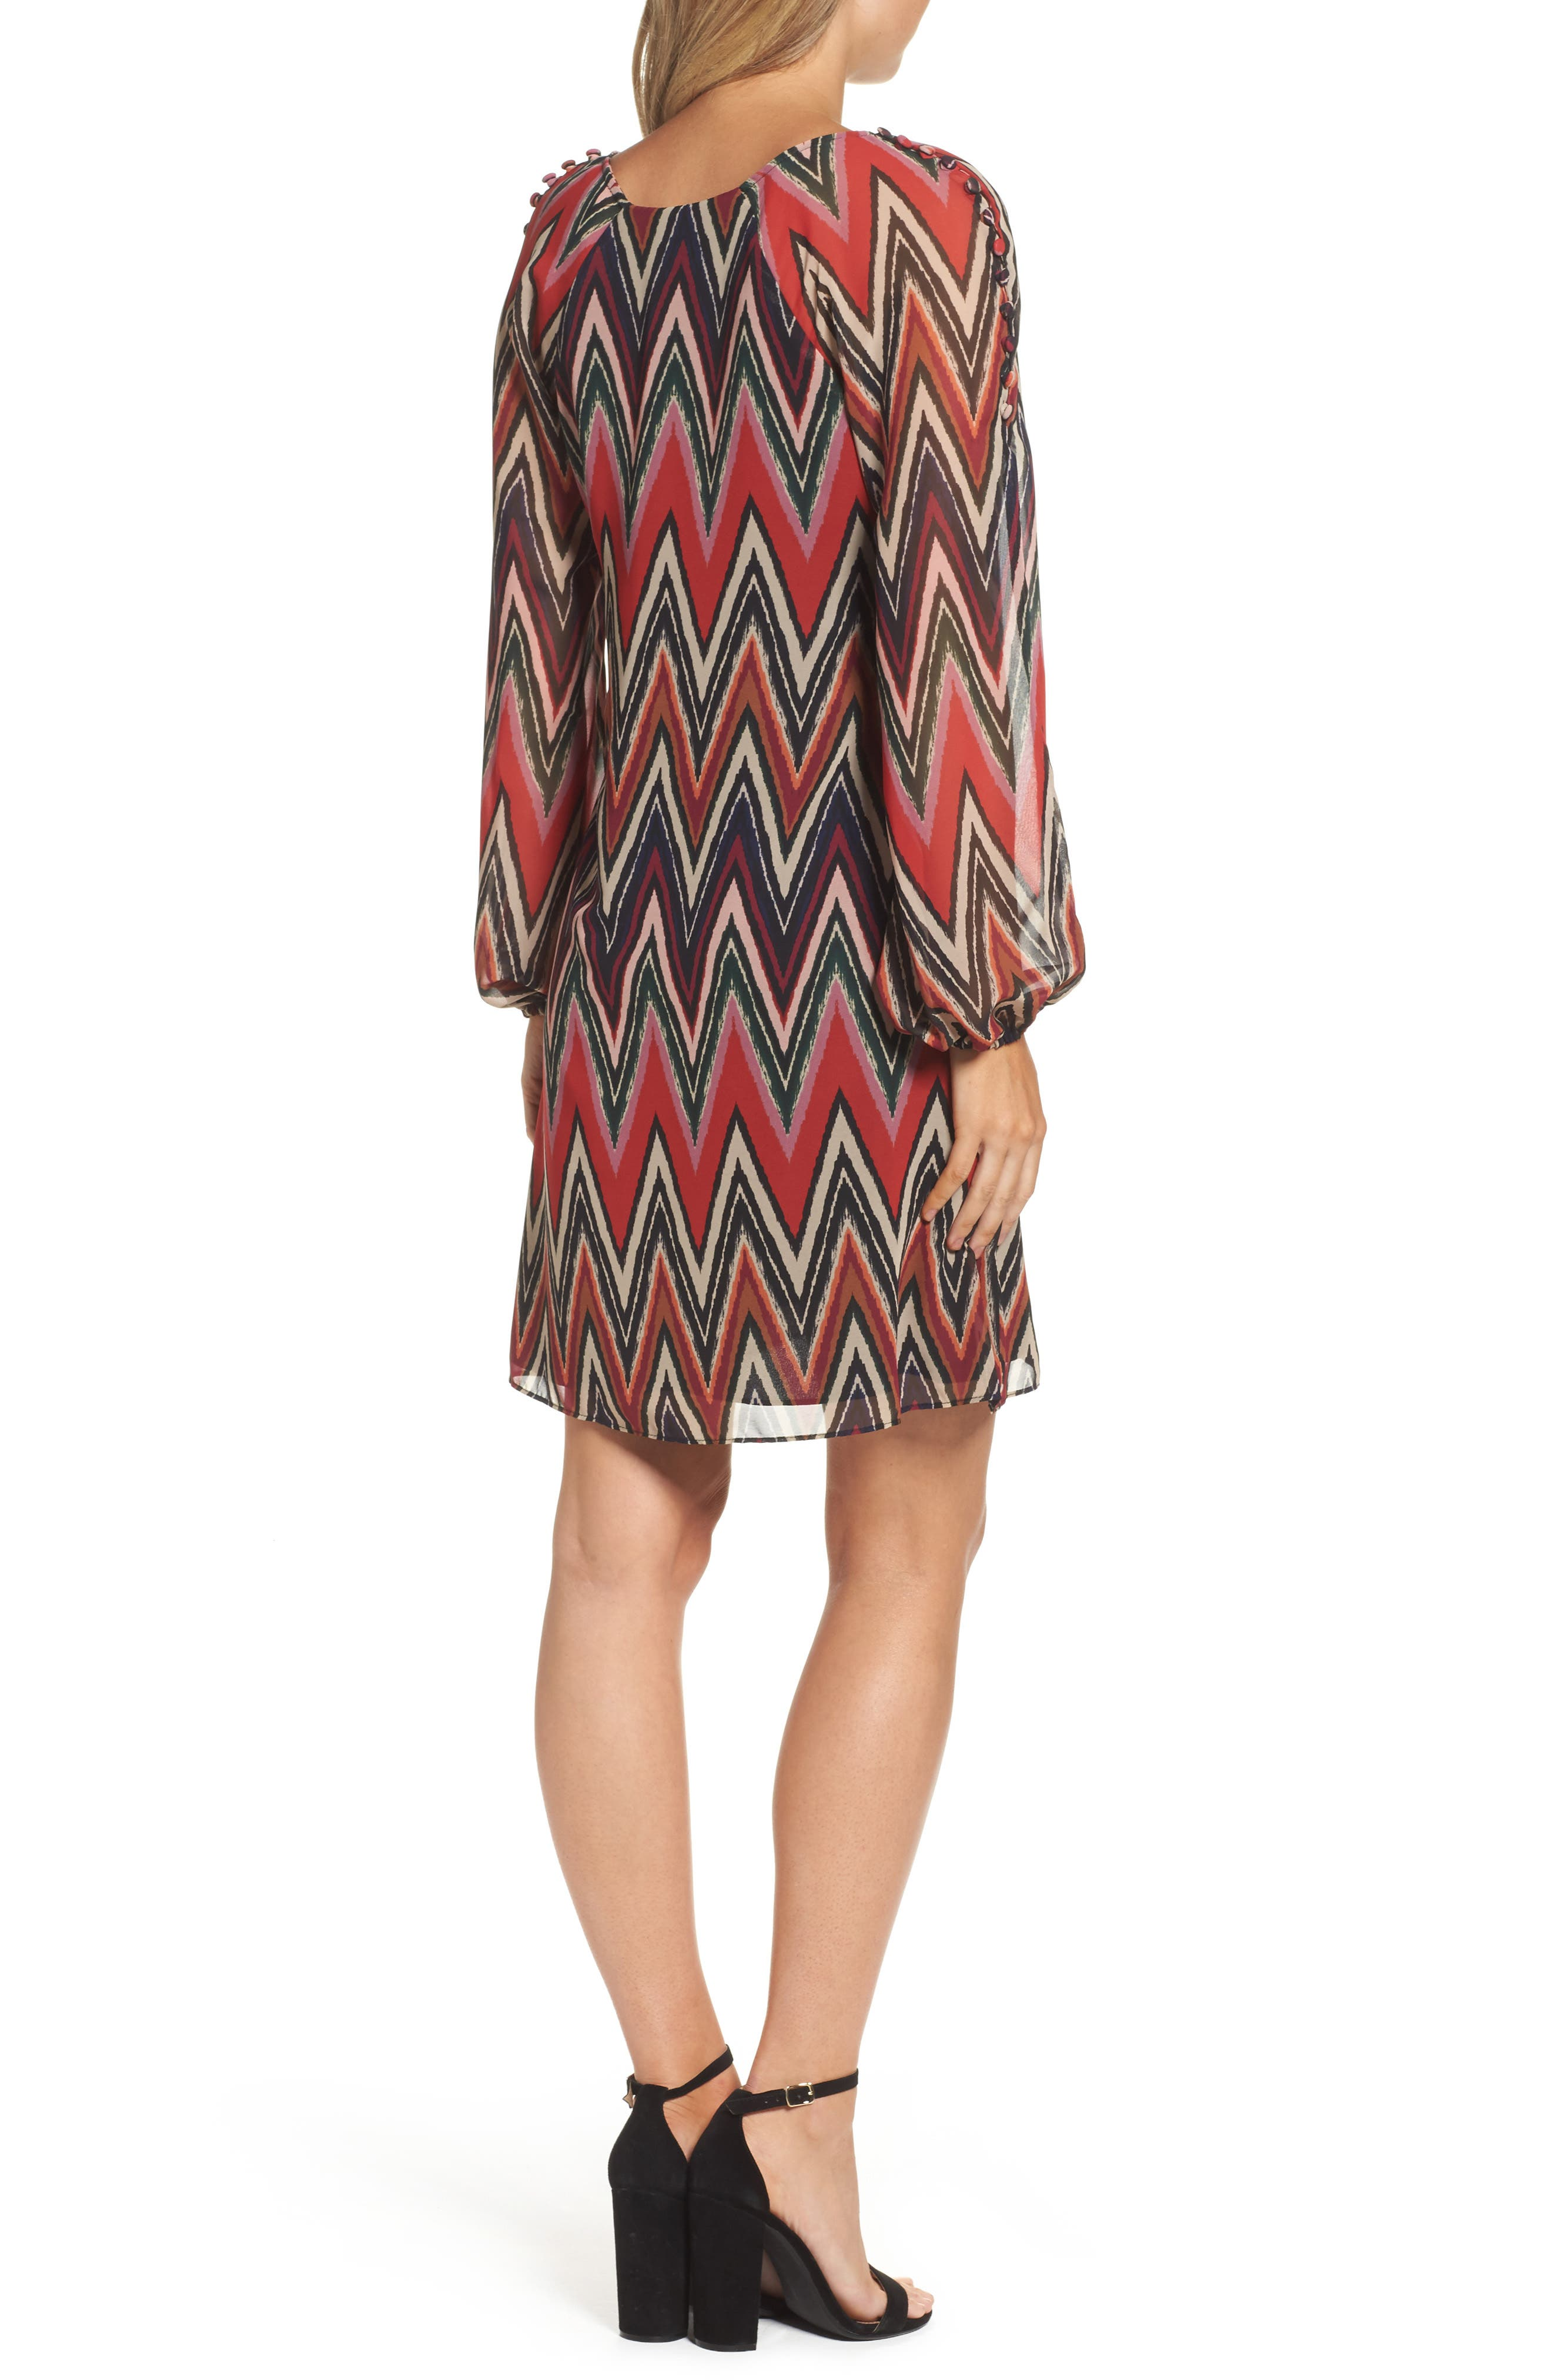 Chevron Swing Dress,                             Alternate thumbnail 2, color,                             Red/ Black